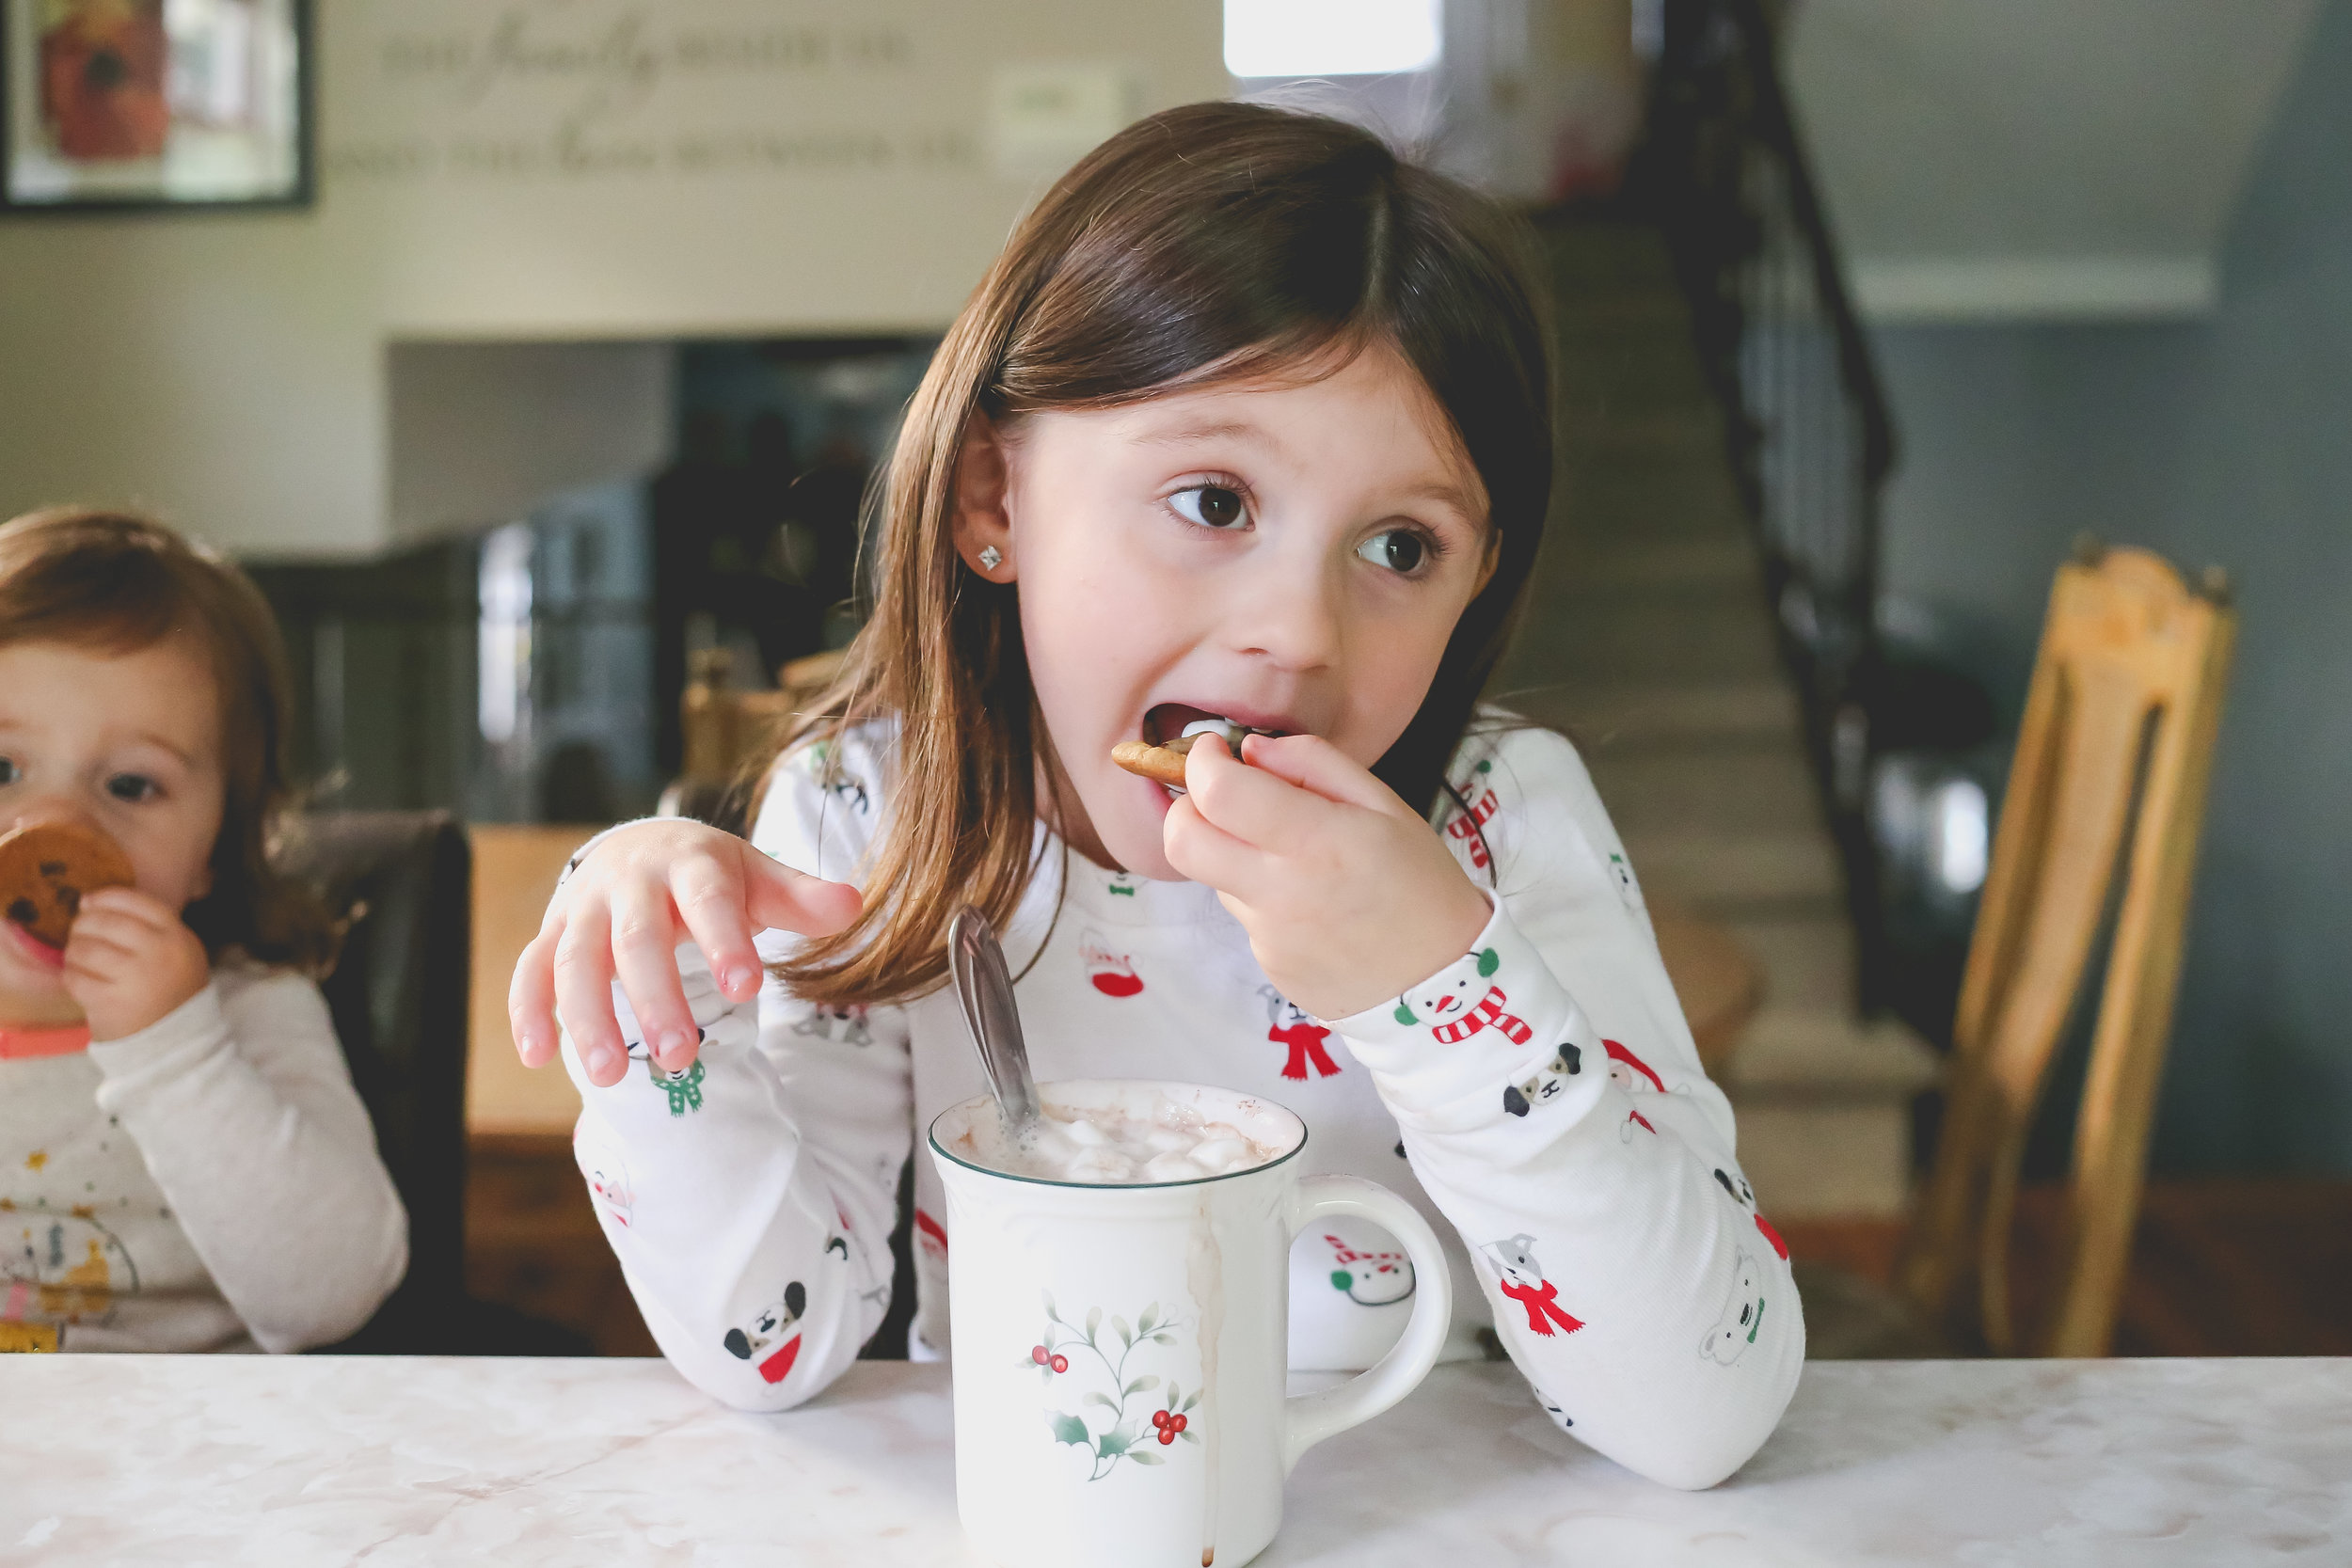 Dunking chocolate chip cookies in hot chocolate. New York family photographer.